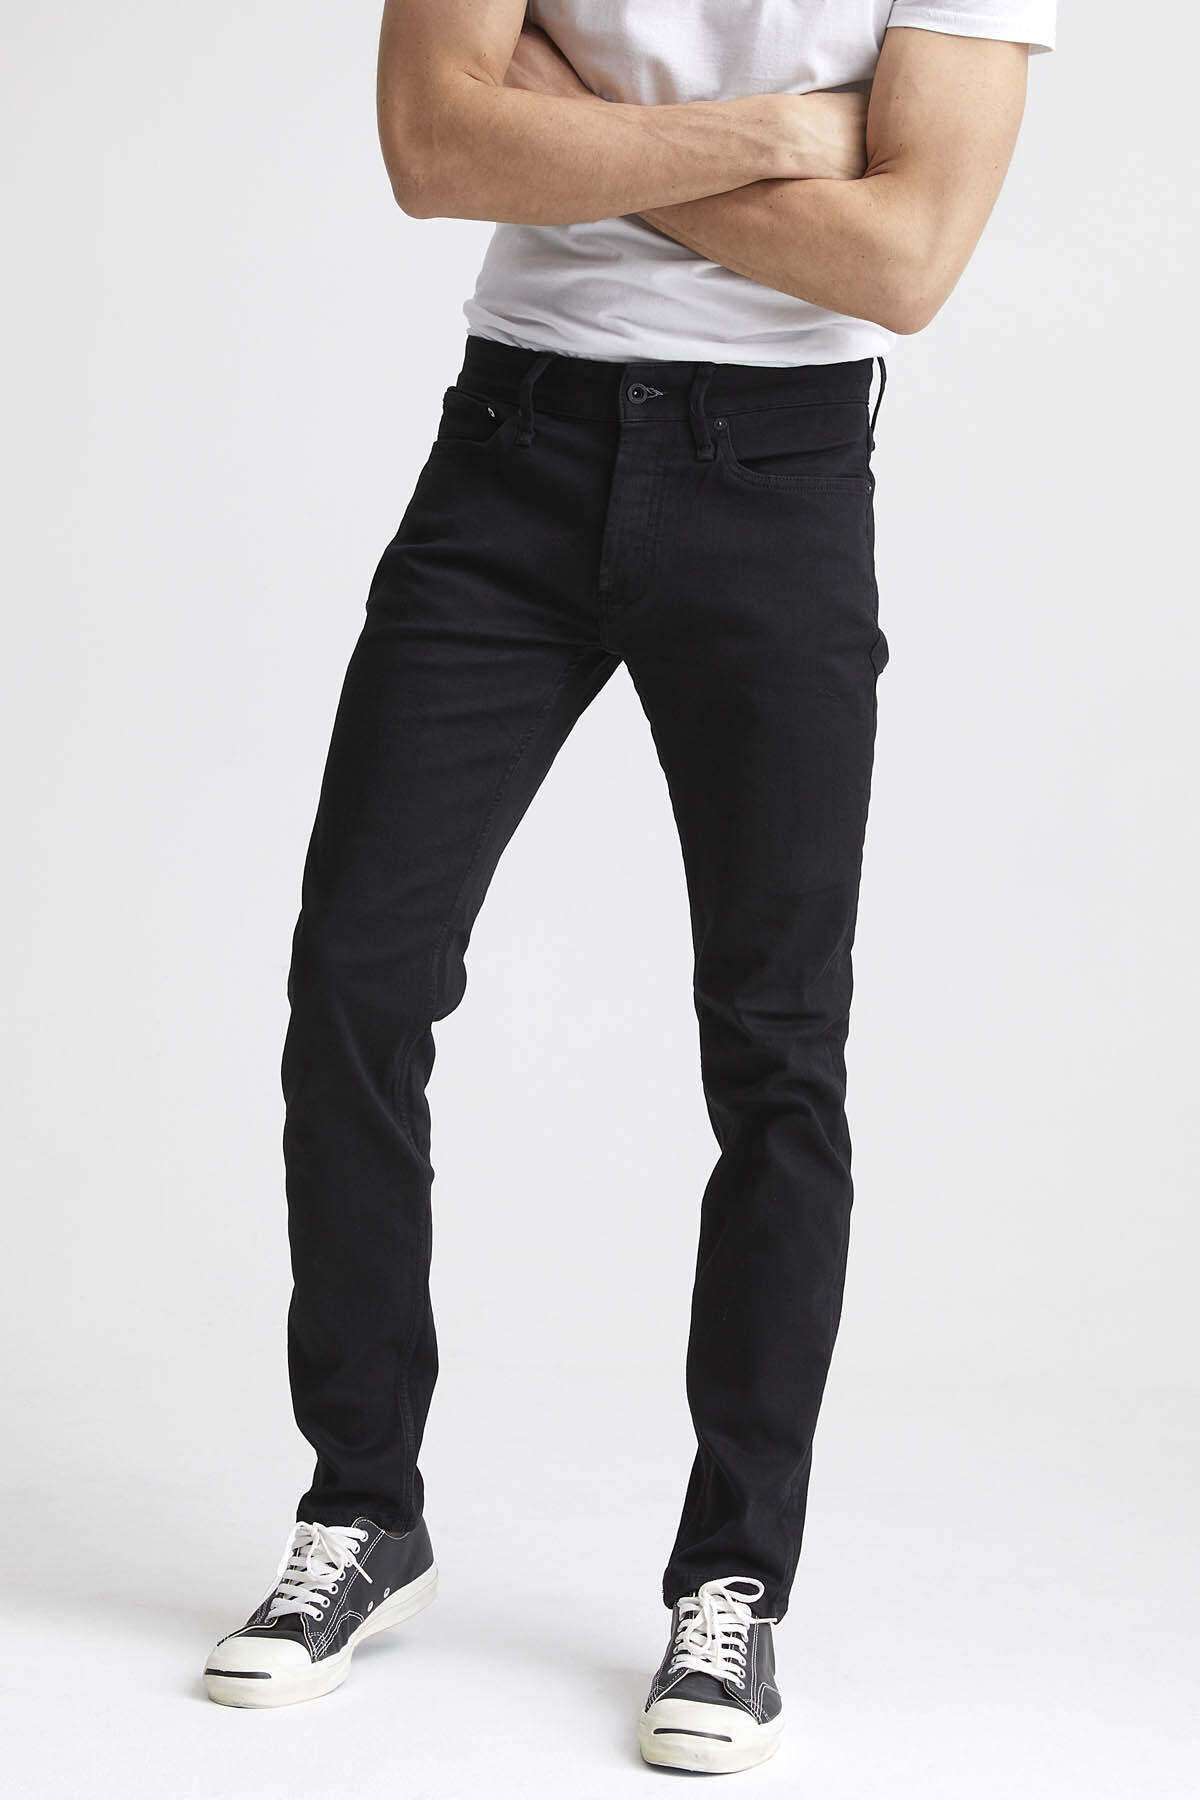 BOLT Pure Black Finish Denim - Skinny Fit